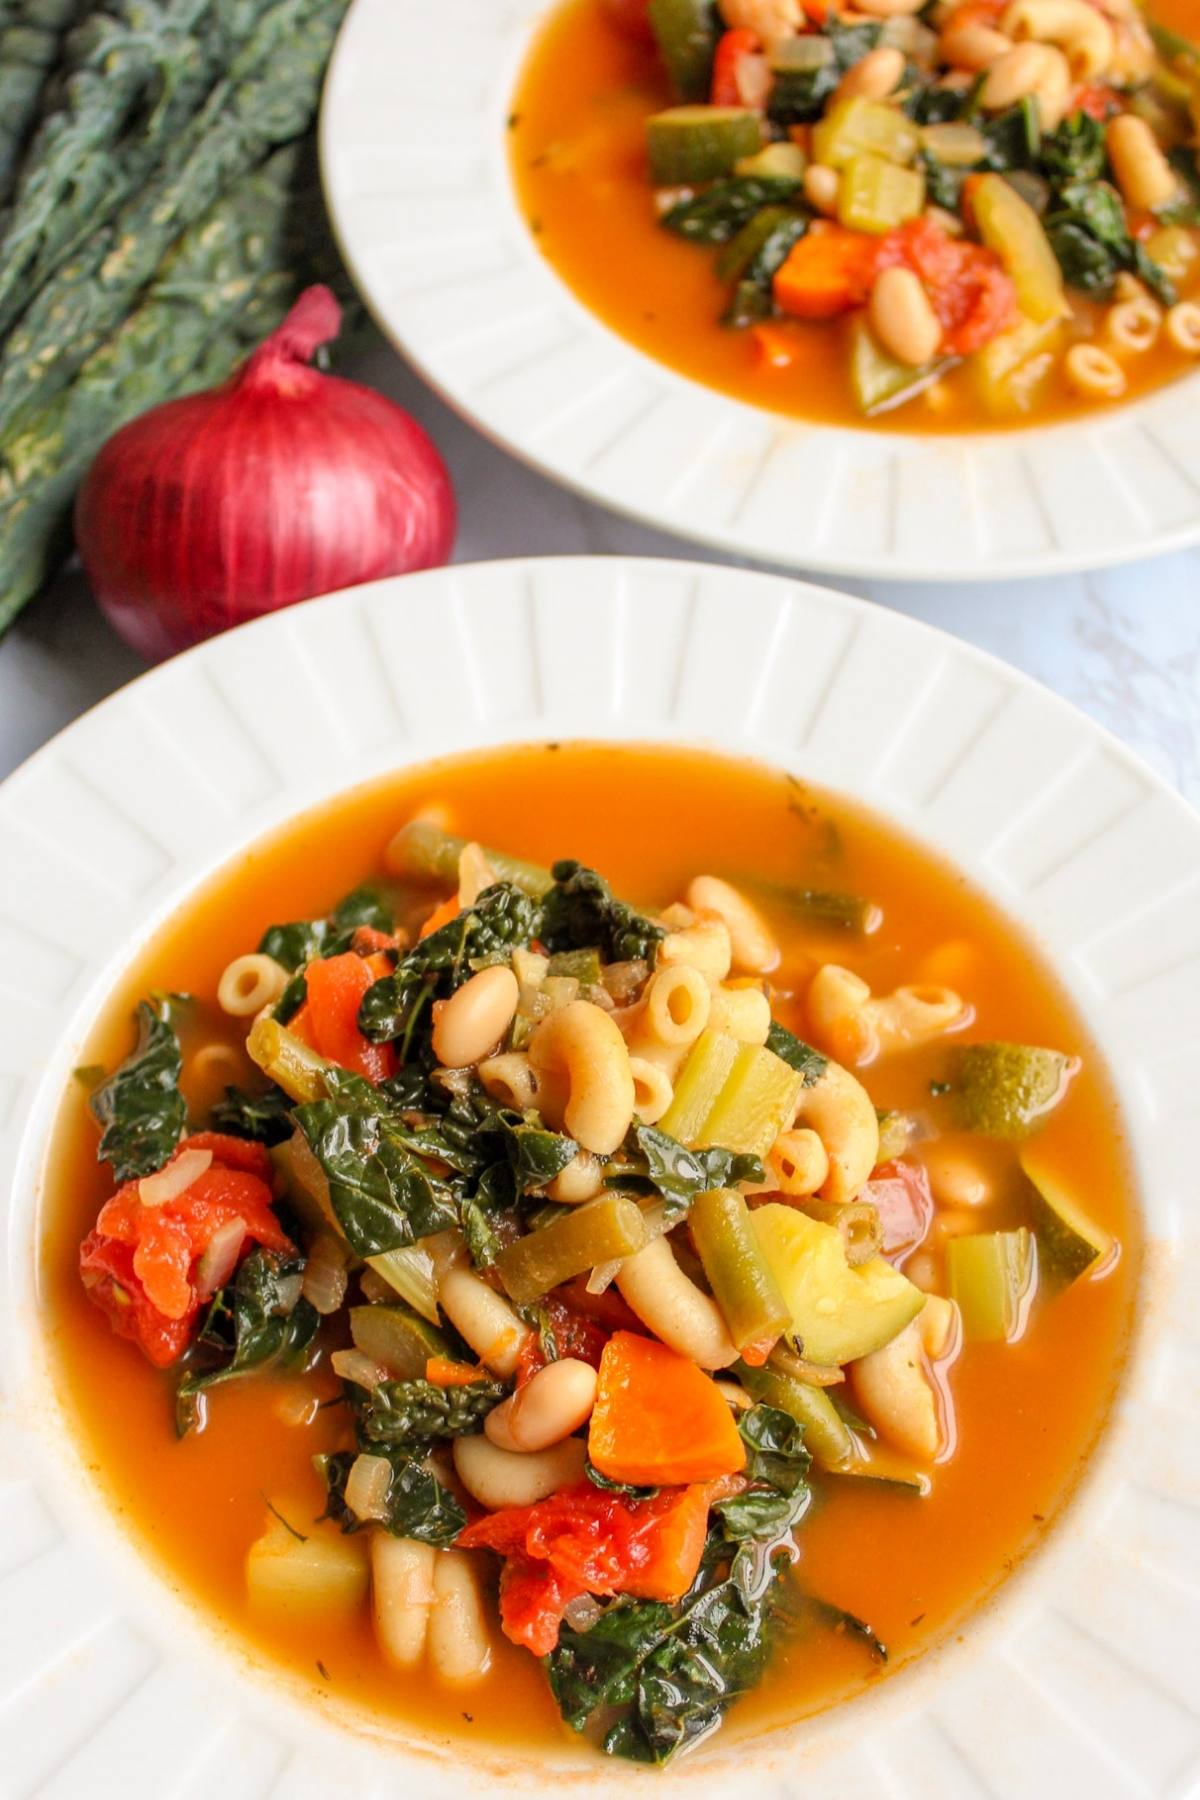 Vegan minestrone soup in a white bowl.